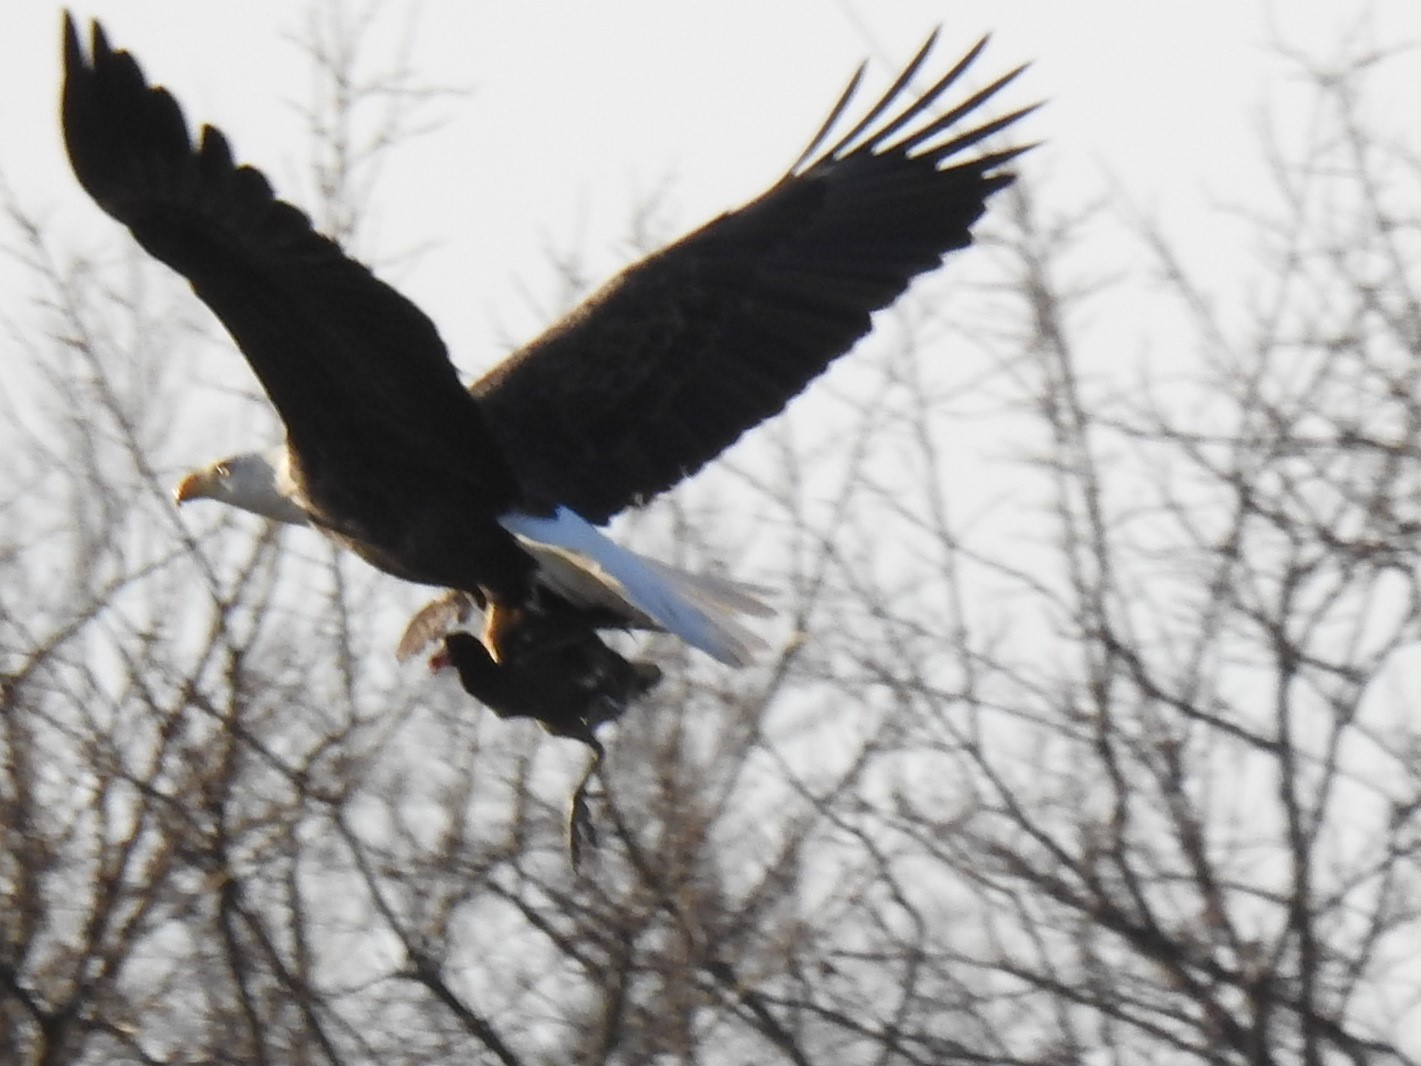 Is this eagle taking a bird out for lunch? nature, wildlife, animal, bird, eagle Photo: Pete Simon